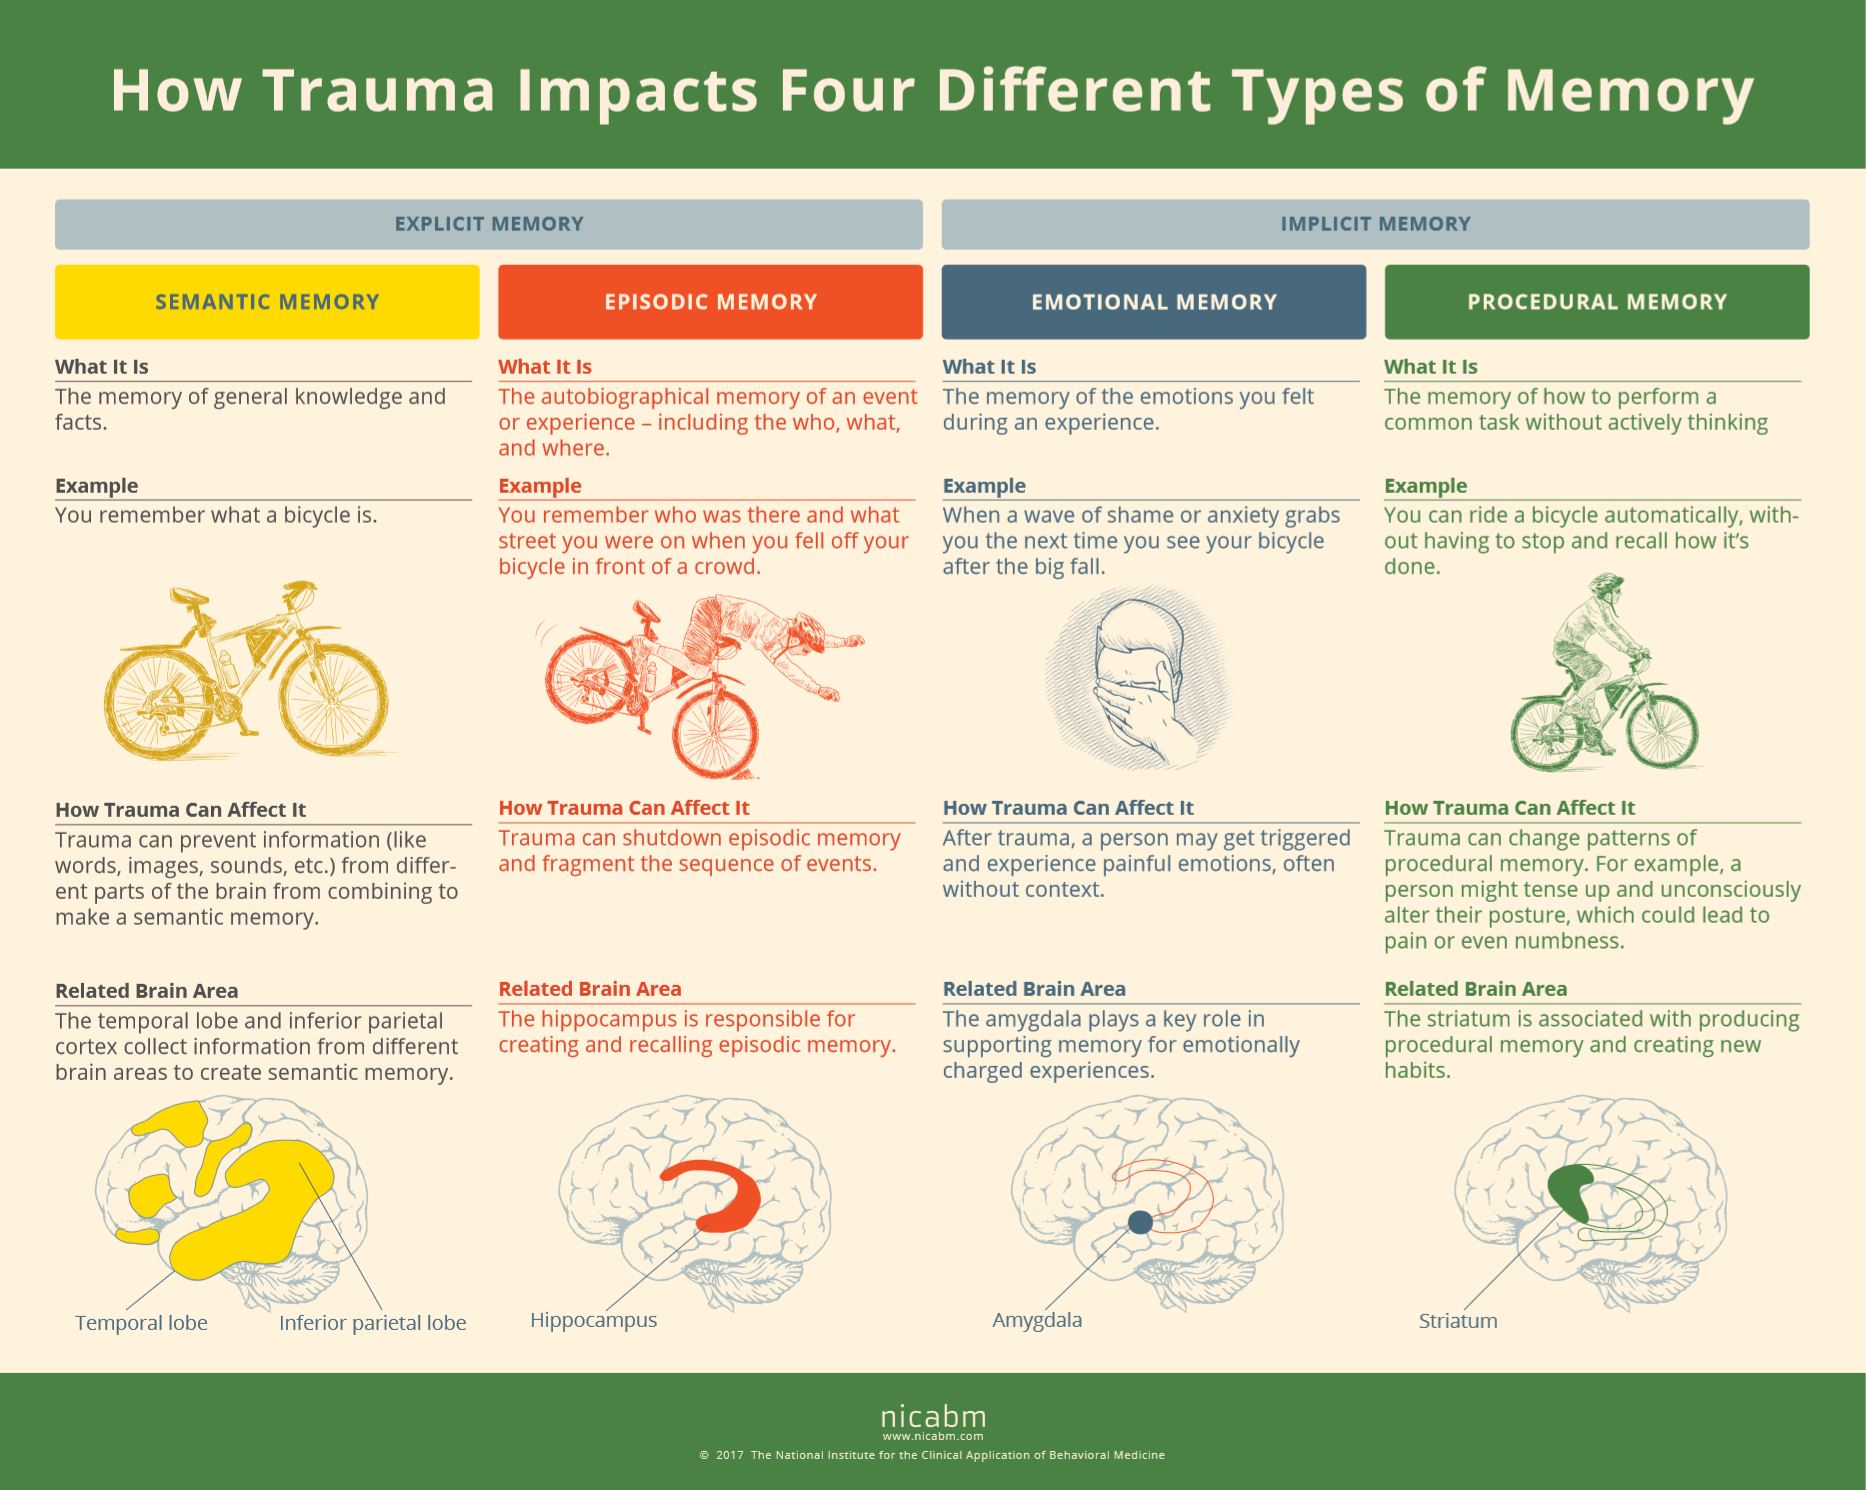 How Trauma Can Impact Memory Systems